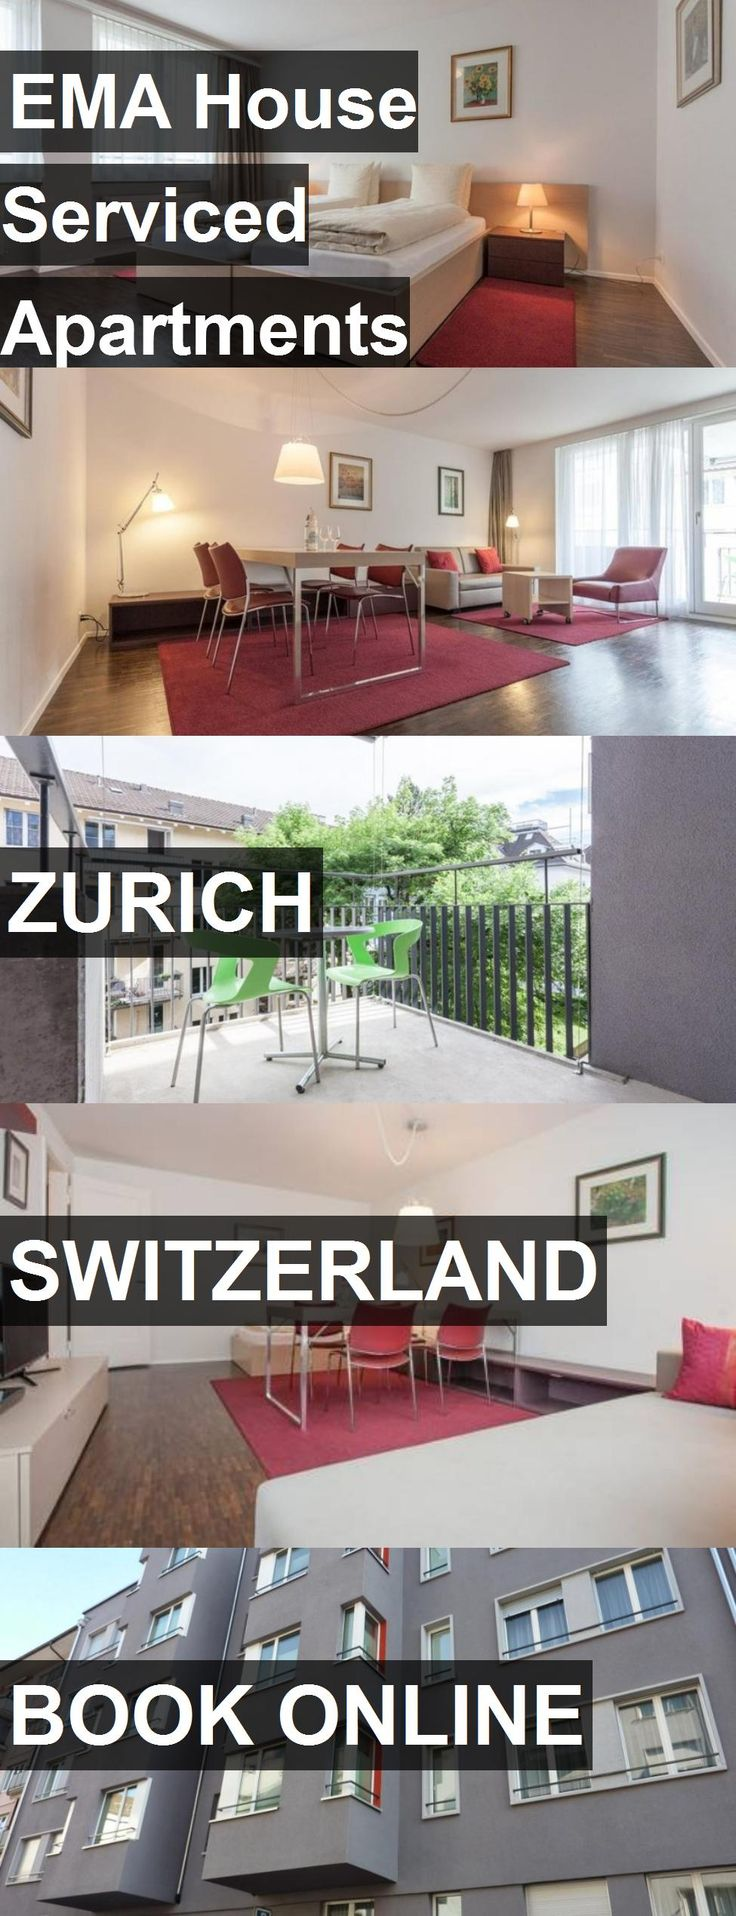 EMA House Serviced Apartments Superior Standard, Seefeld in Zurich, Switzerland. For more information, photos, reviews and best prices please follow the link. #Switzerland #Zurich #travel #vacation #apartment